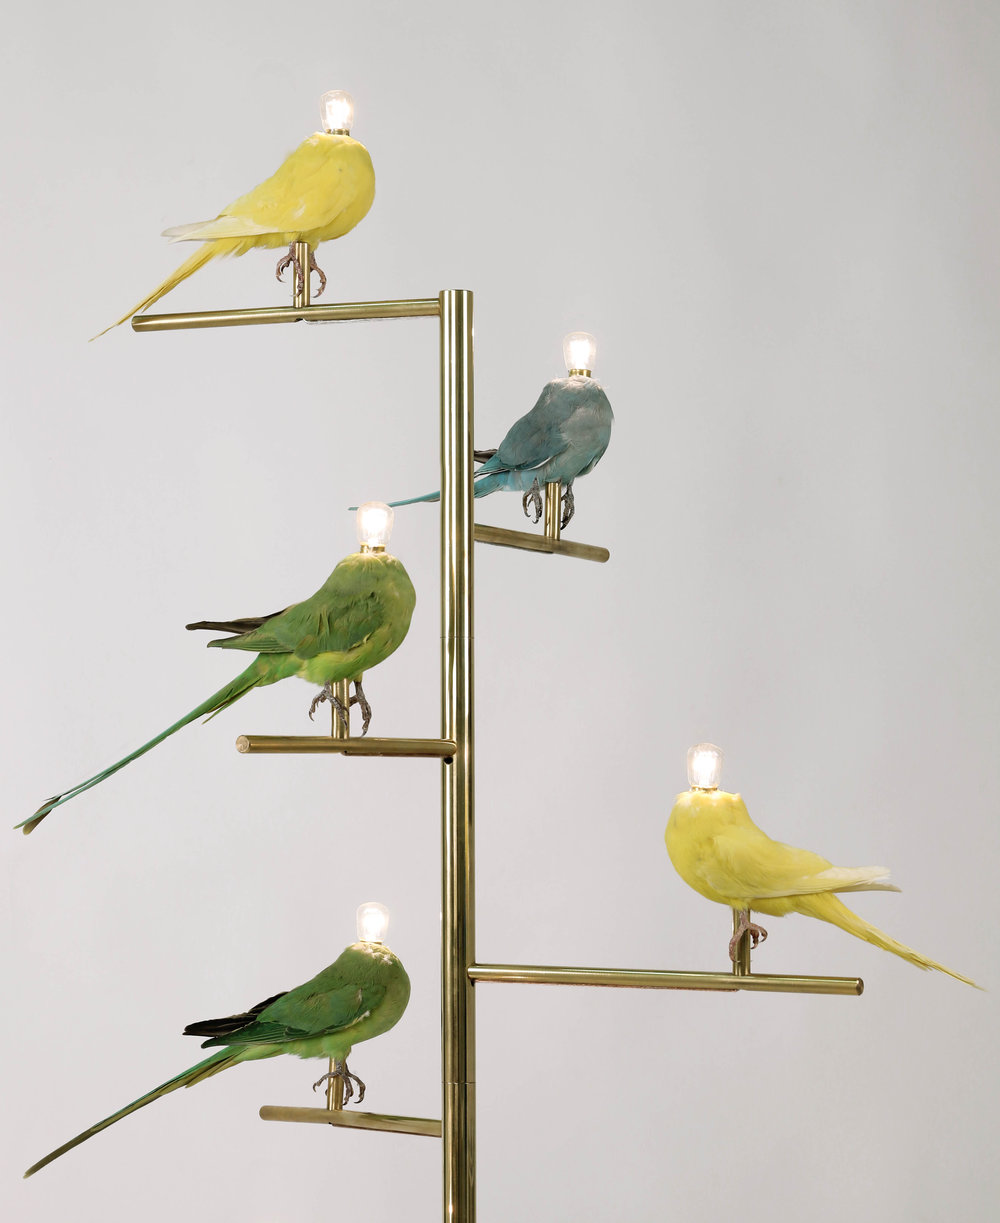 Sebastian Errazurizu0027s New Floor Lamp Continues His Ongoing Series Of  Taxidermy Bird Lamps.The Fragile And Colorful Birds Are Frozen On Their  Perch And Seem ...